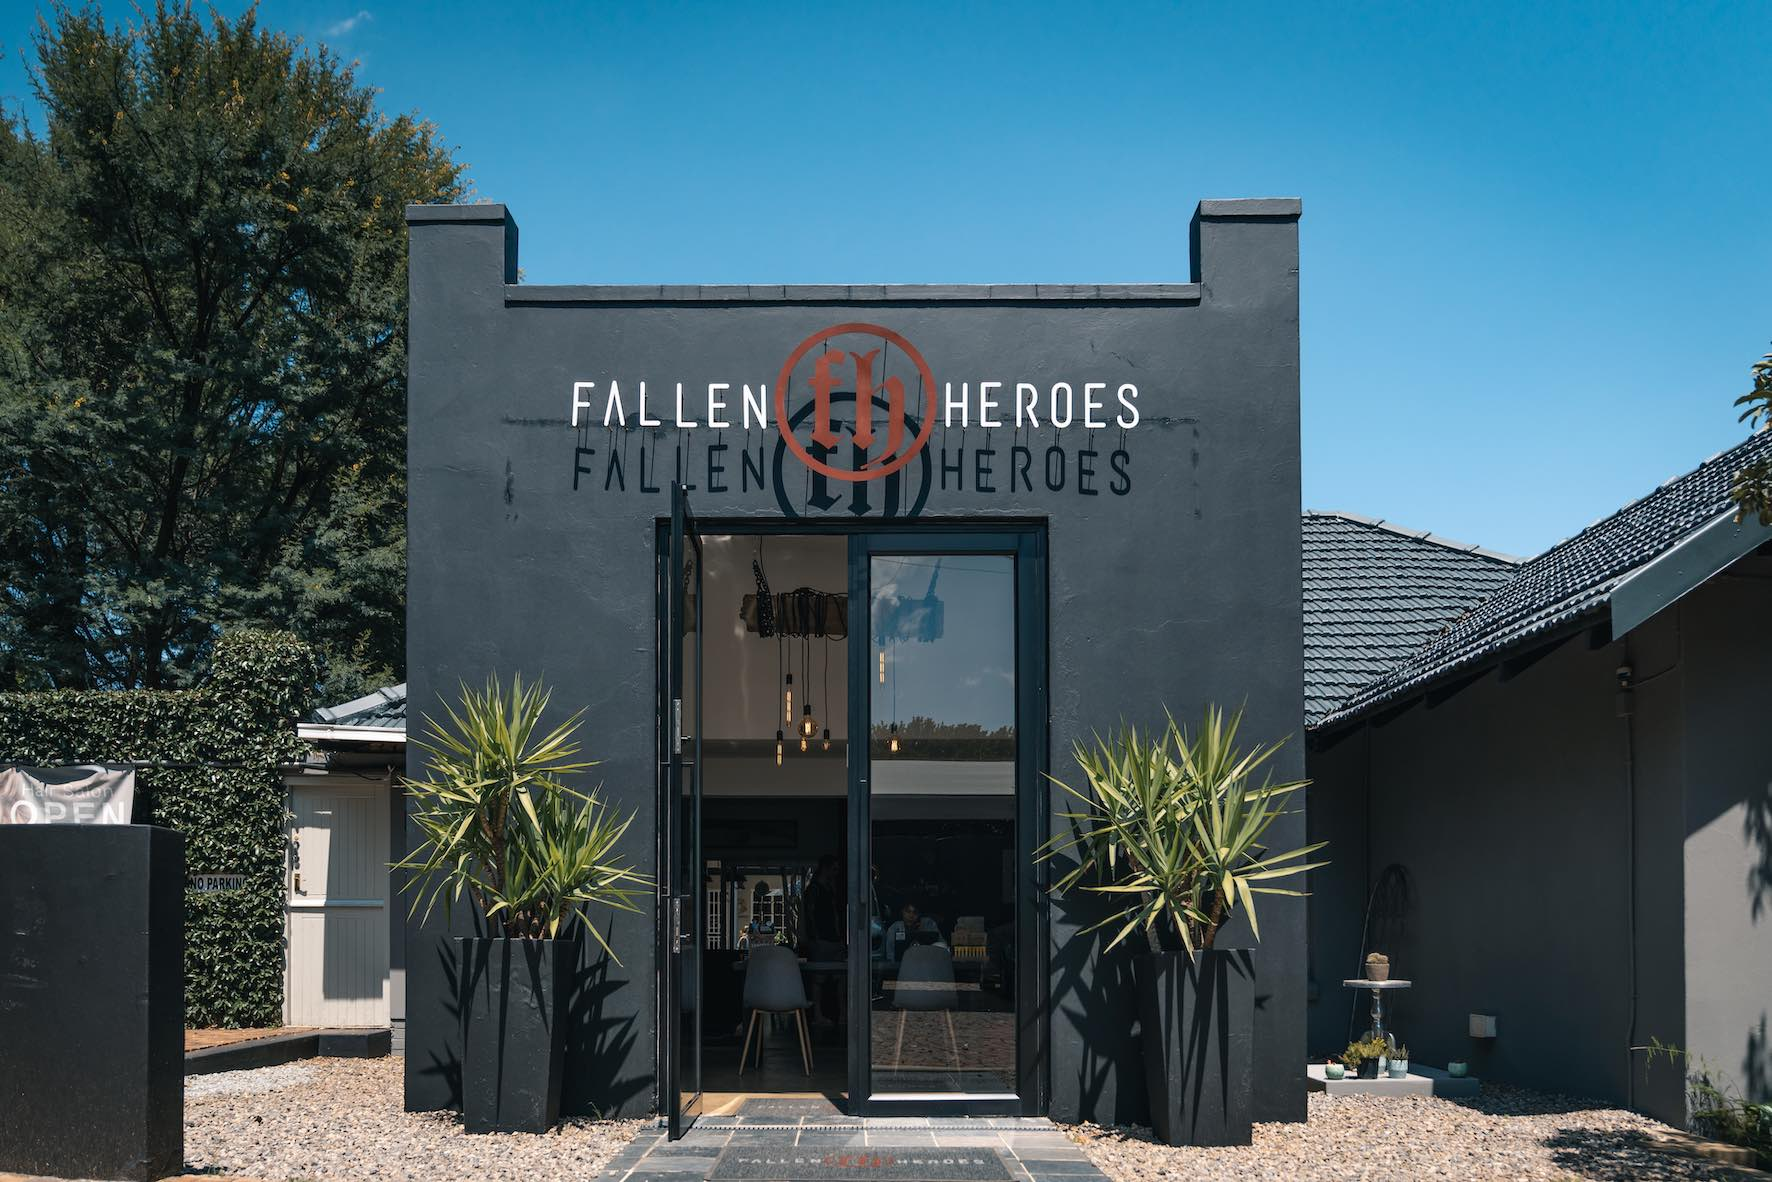 First look at the new Fallen Heroes Tattoo Shop